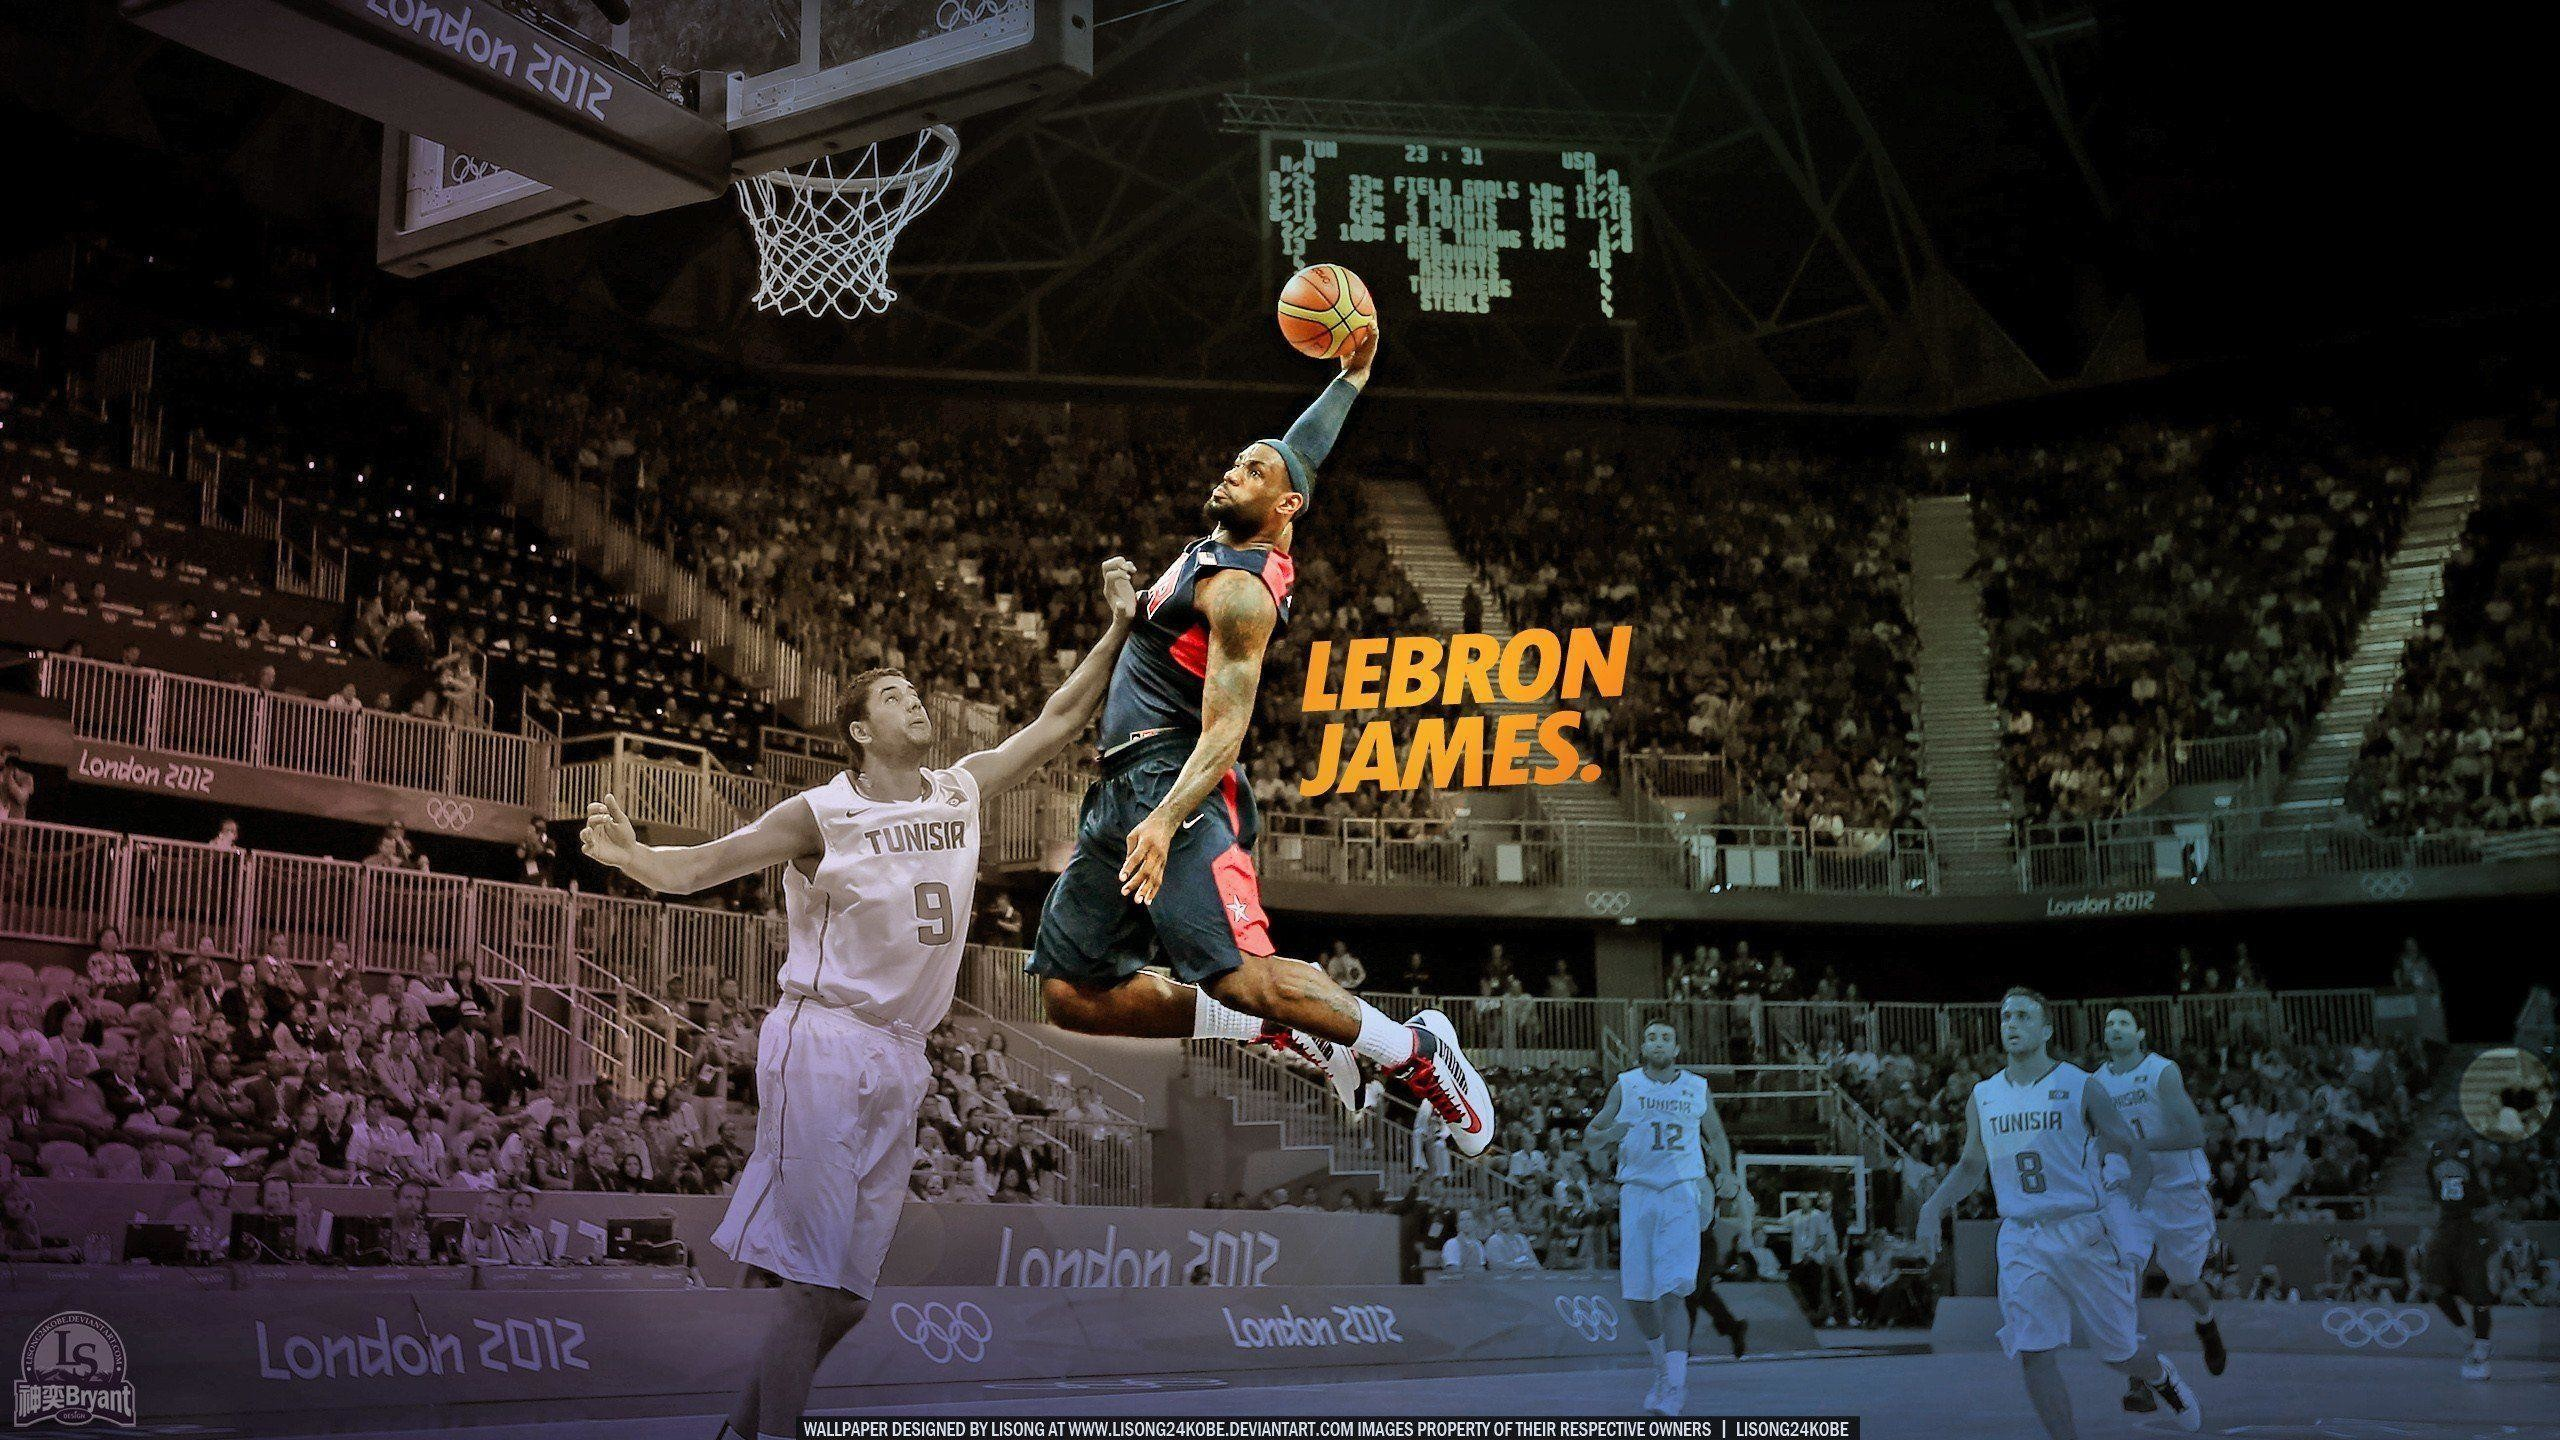 Lebron James Dunking Wallpaper 63 Pictures